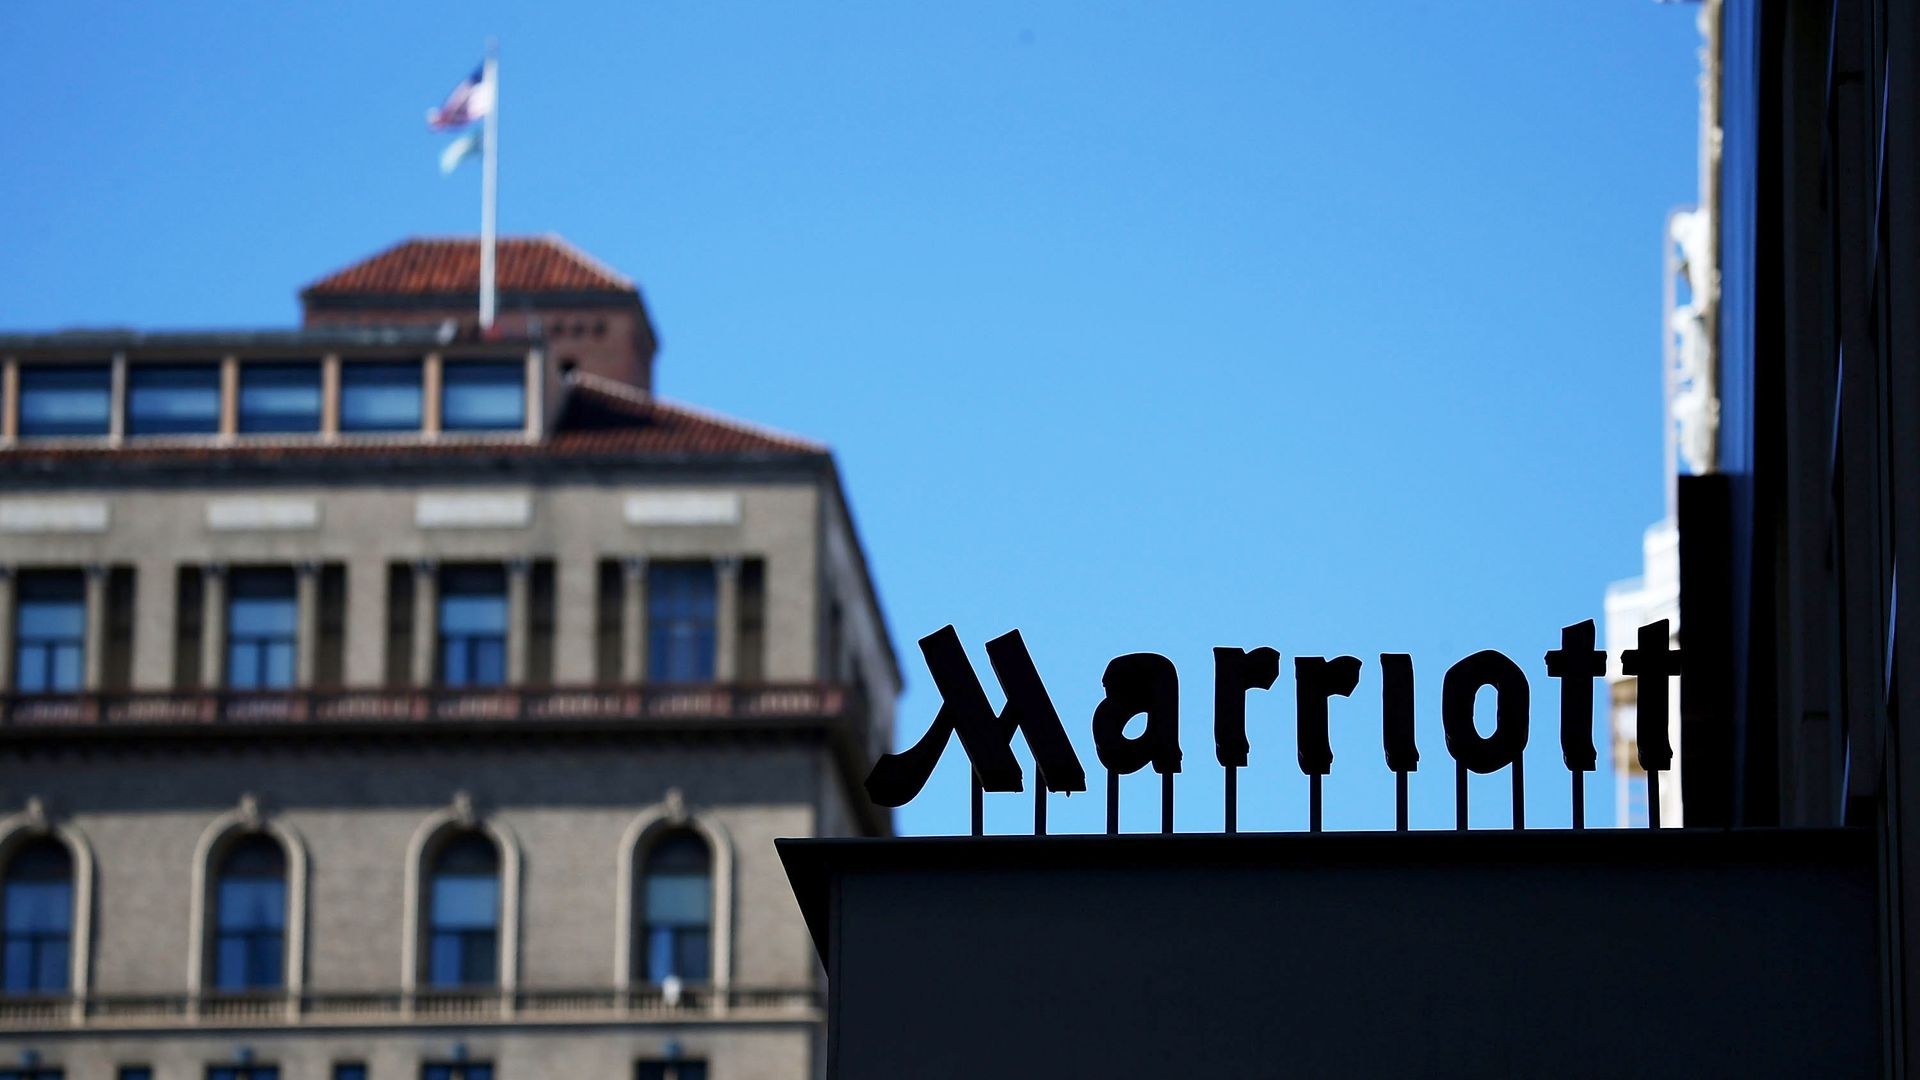 A Marriott sign.